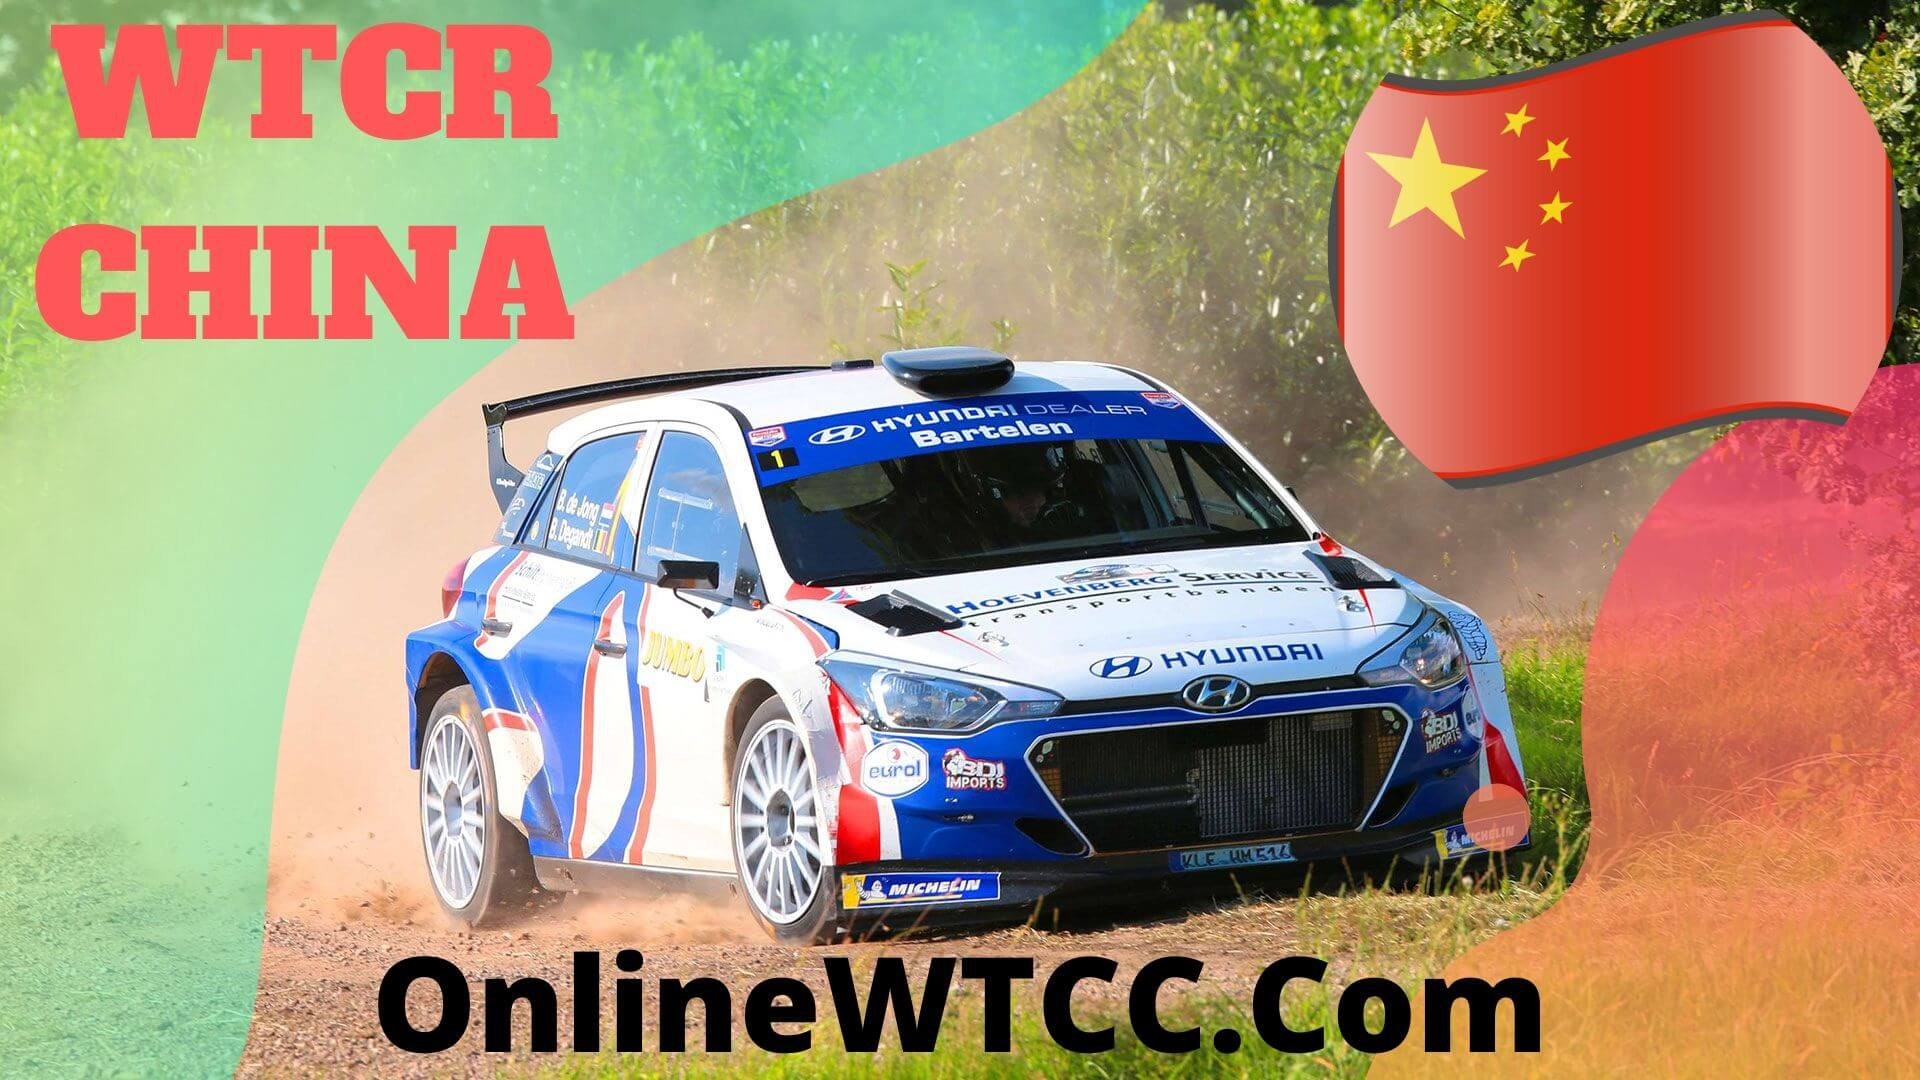 online-race-of-china-wtcc-hd